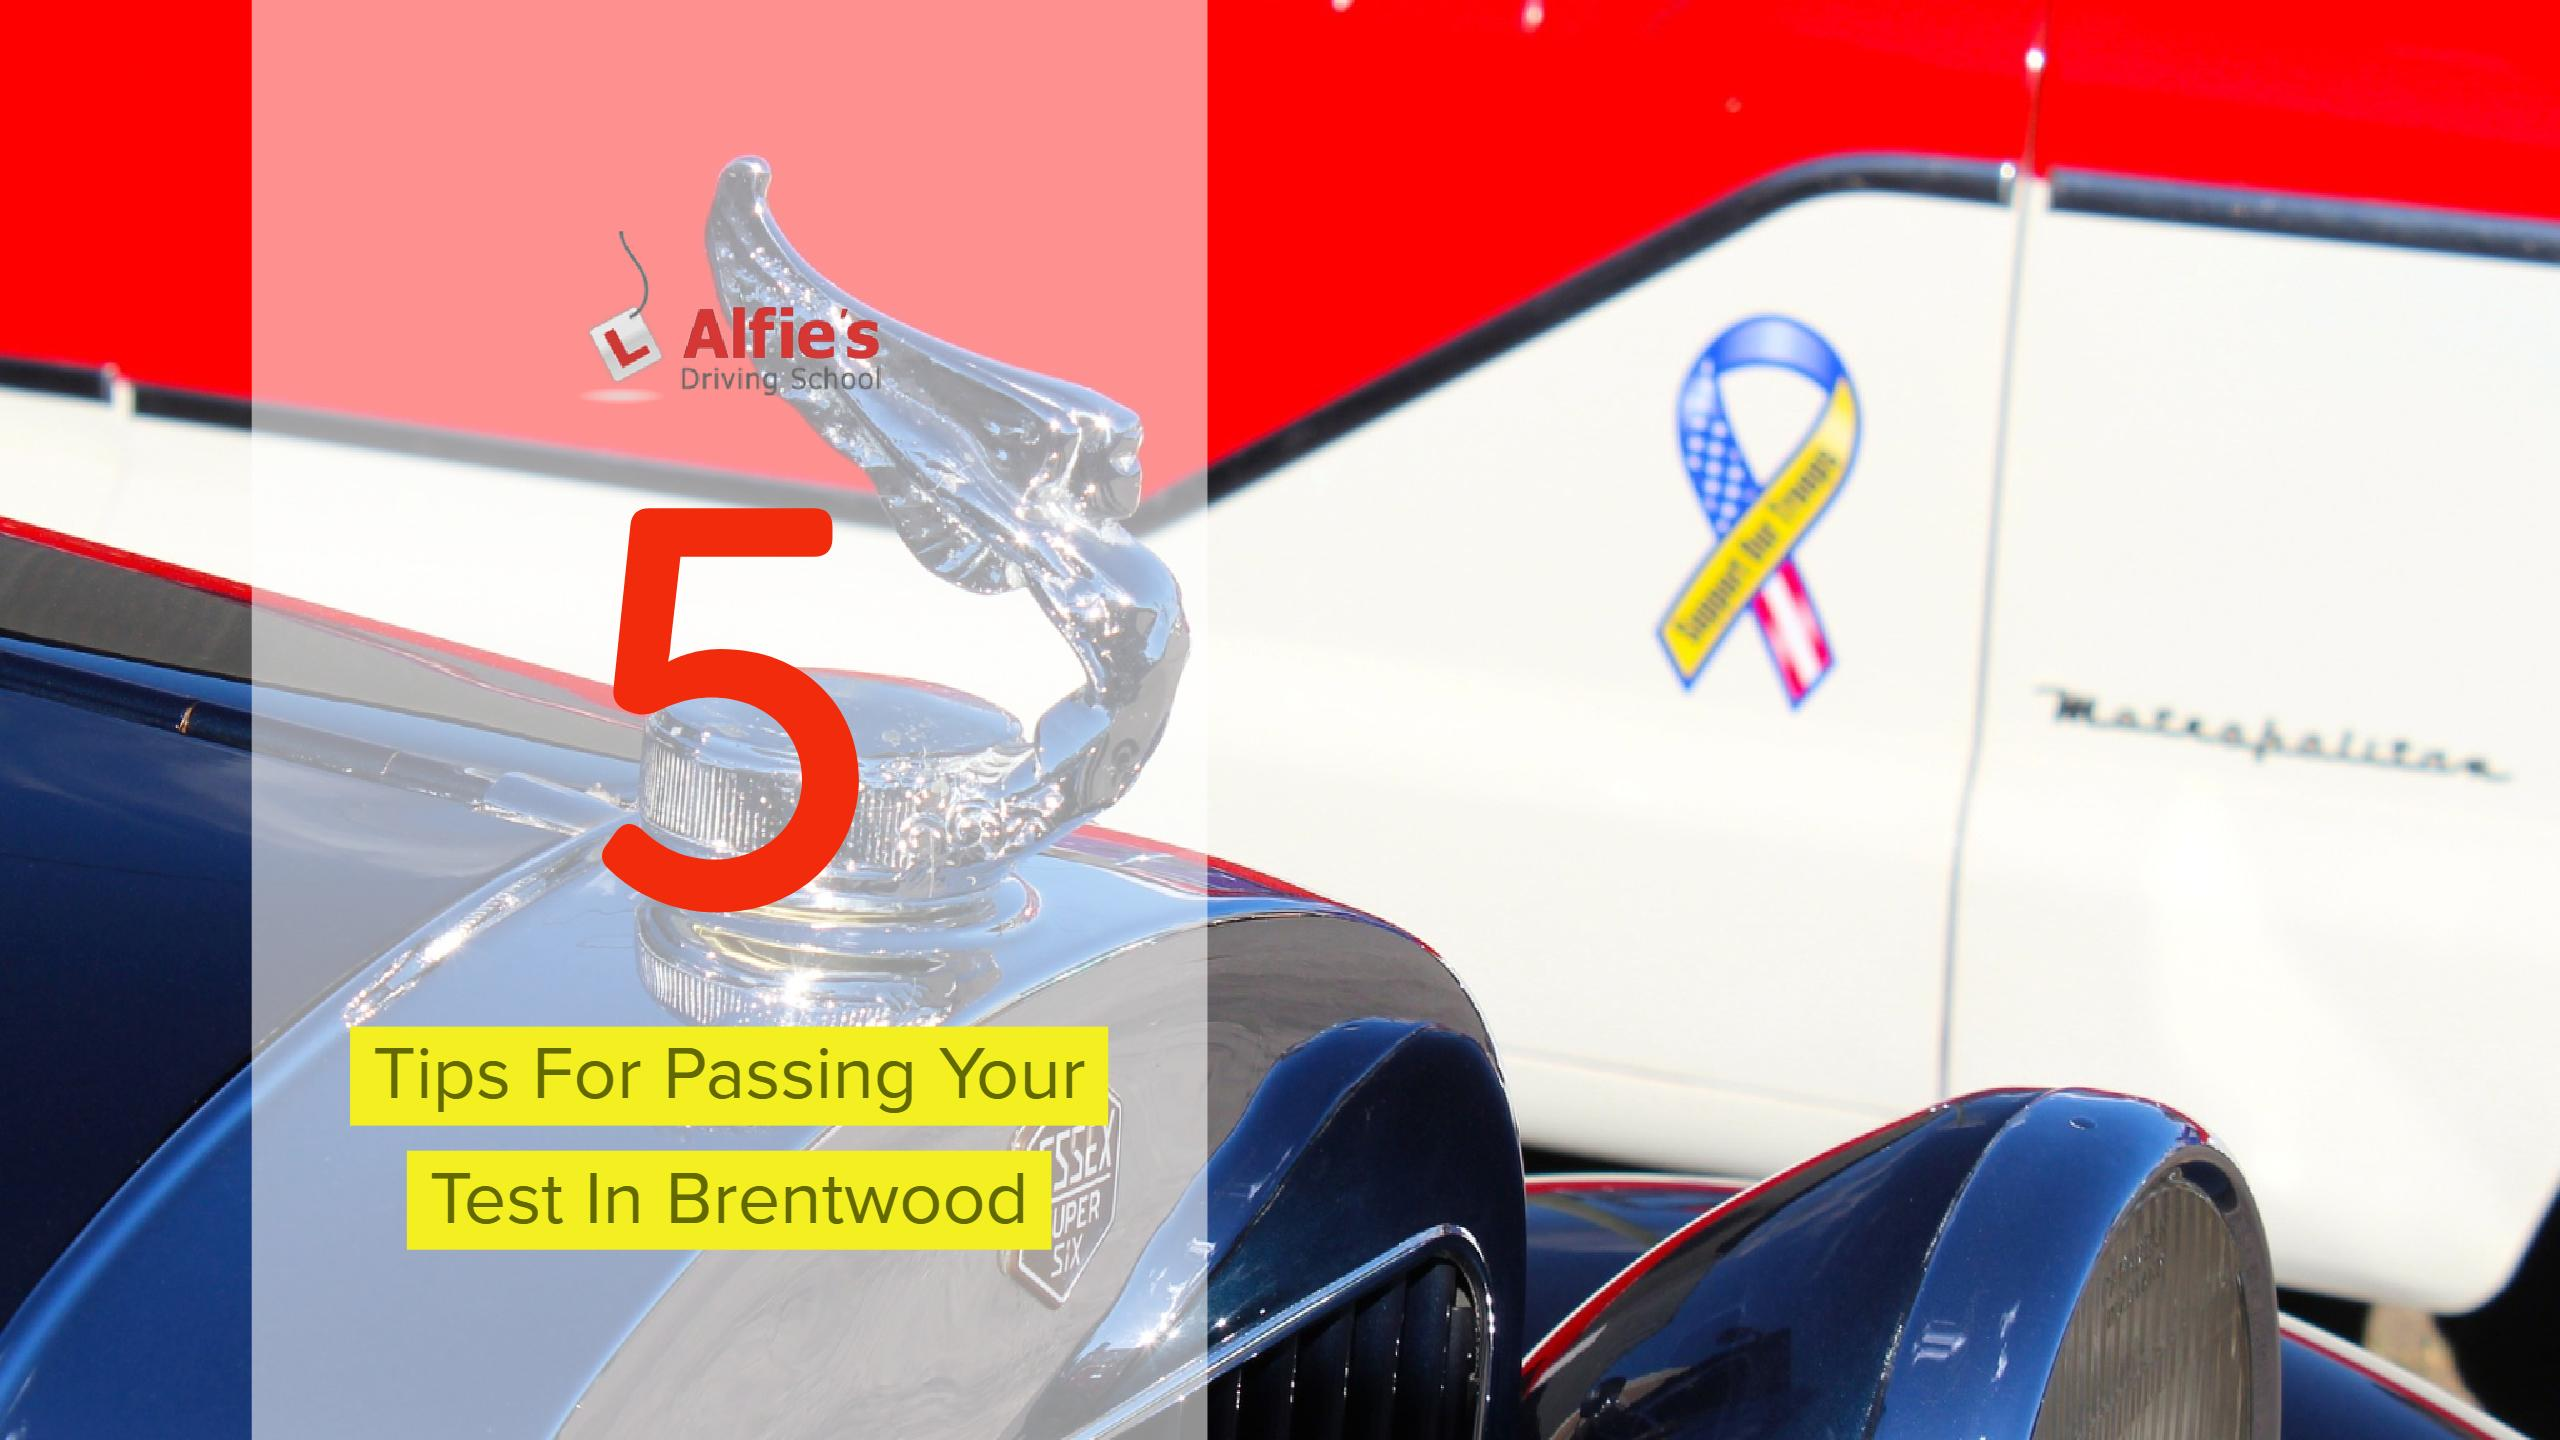 5 Tips For Passing Your Test In Brentwood 4